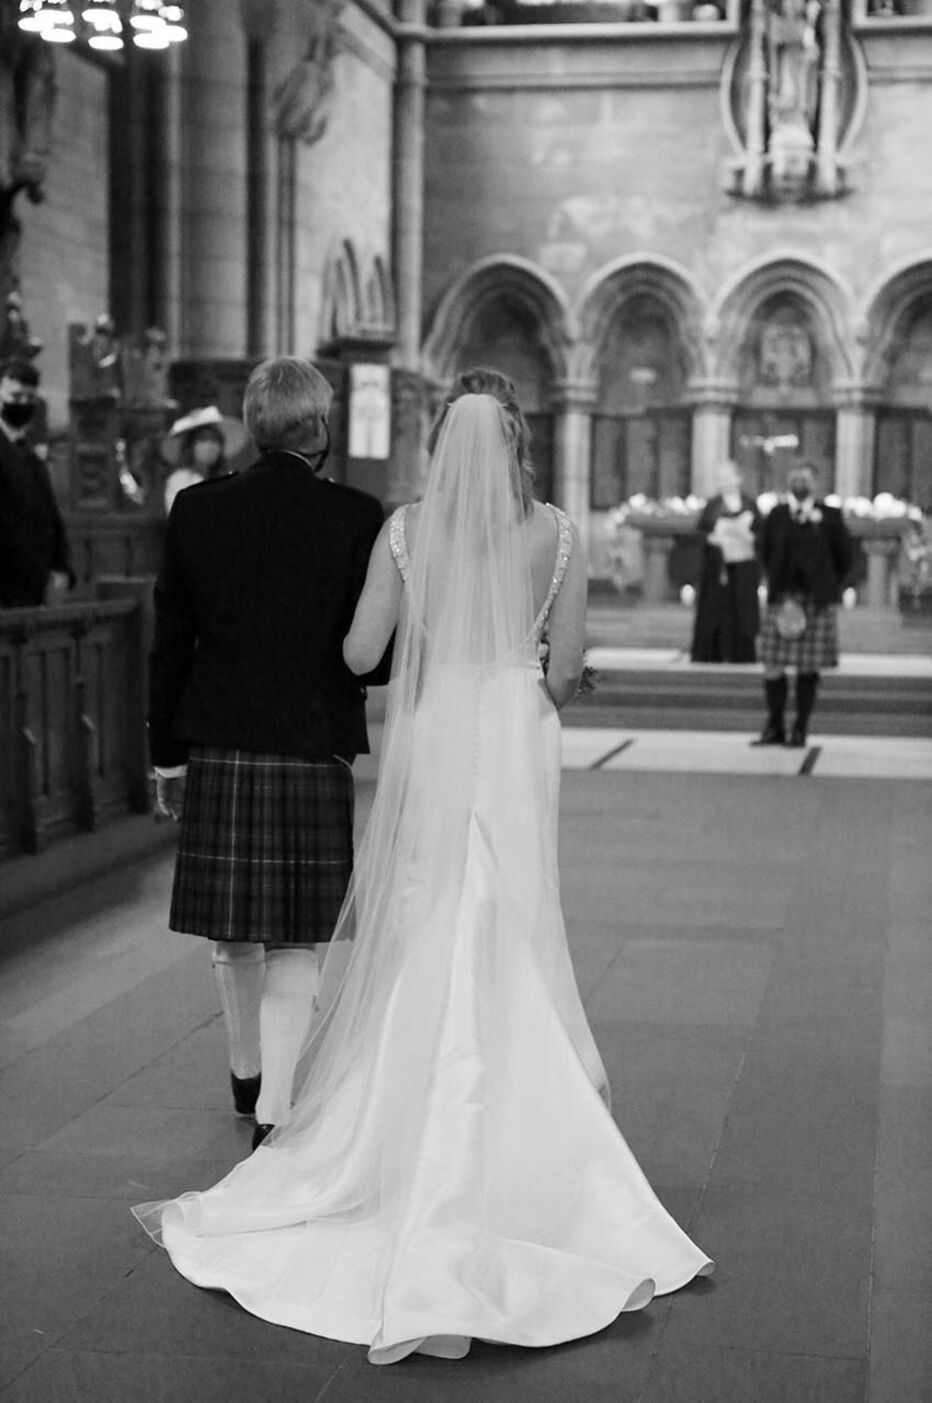 Adam and Emma's Wedding at University of Glasgow